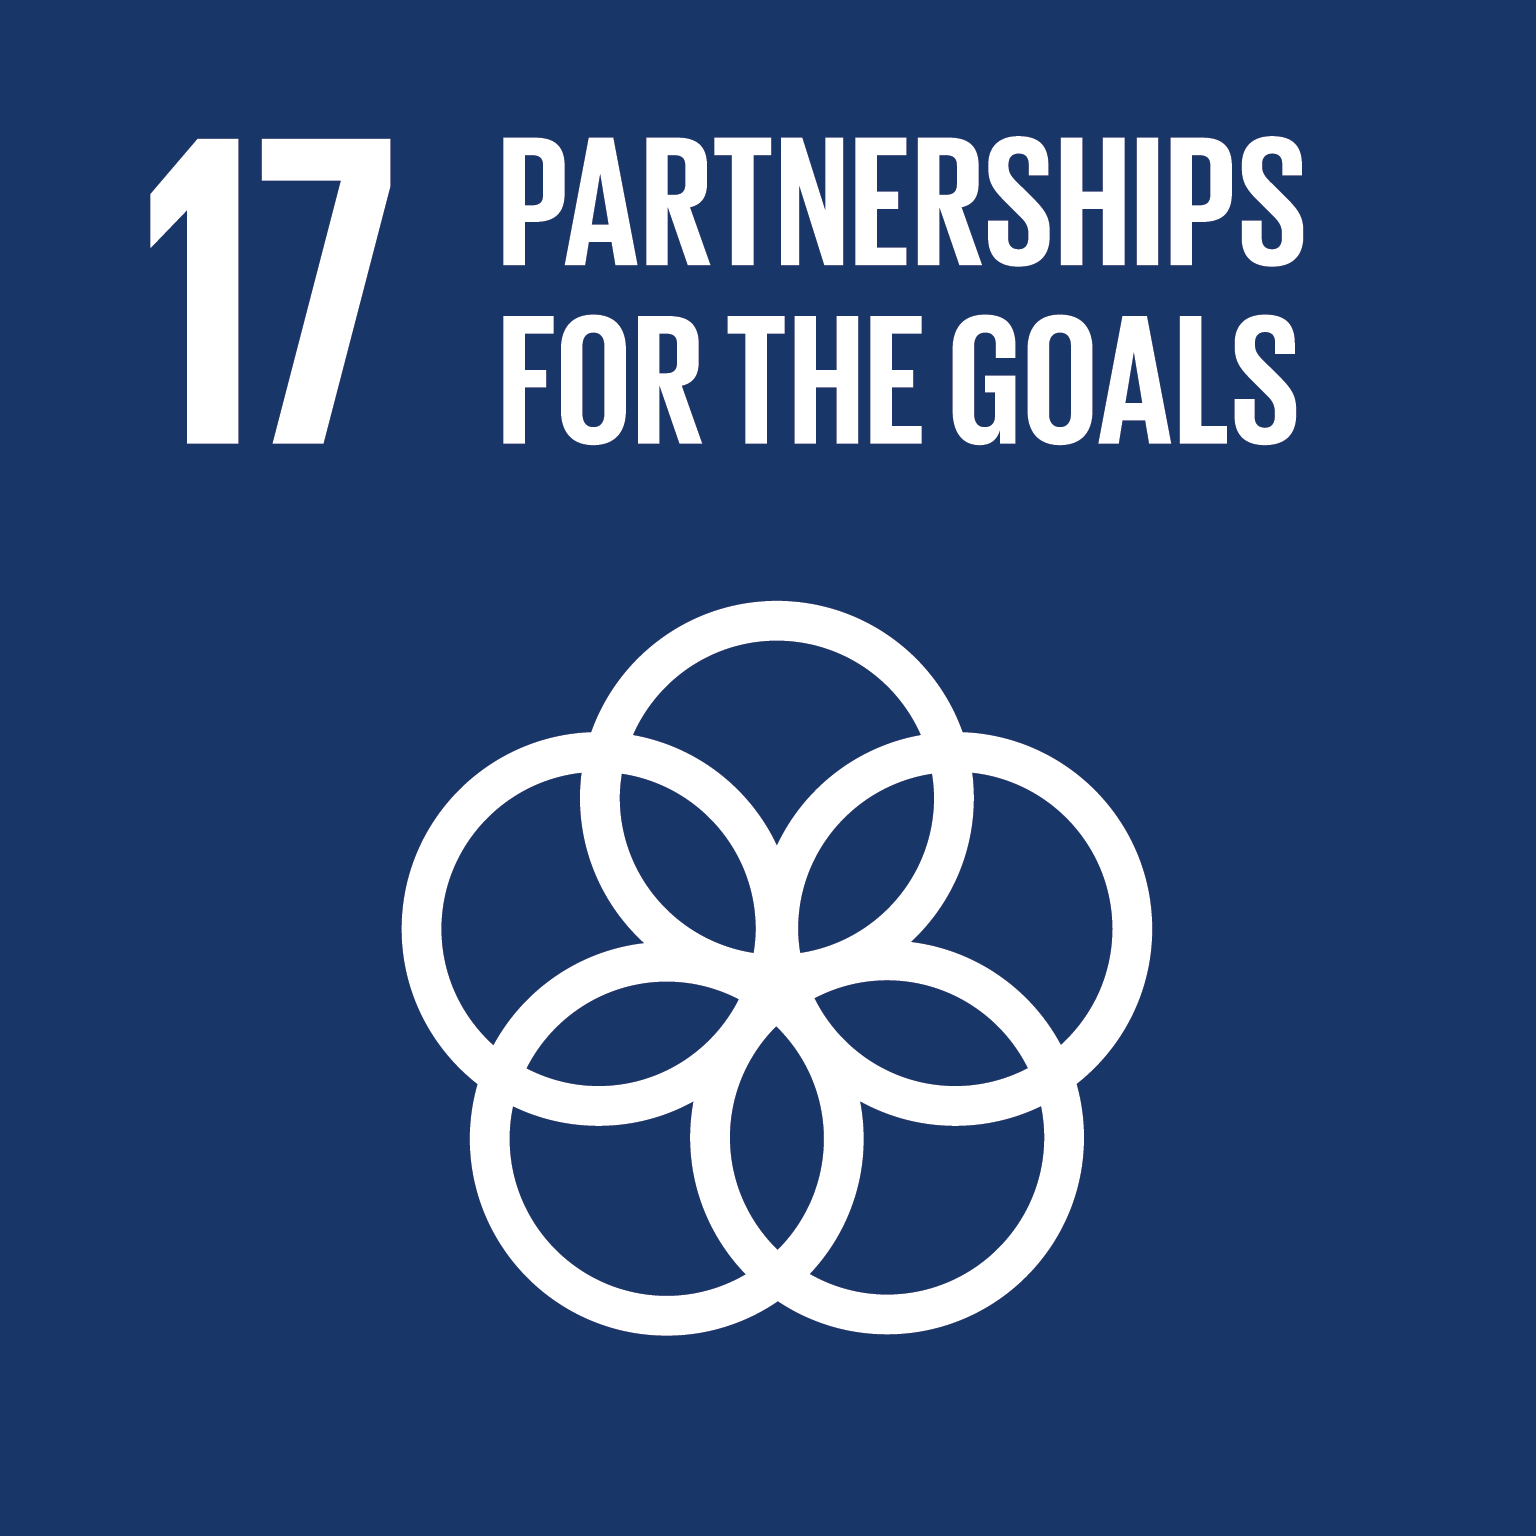 U.N. SDG goal 17, partnerships for the goals